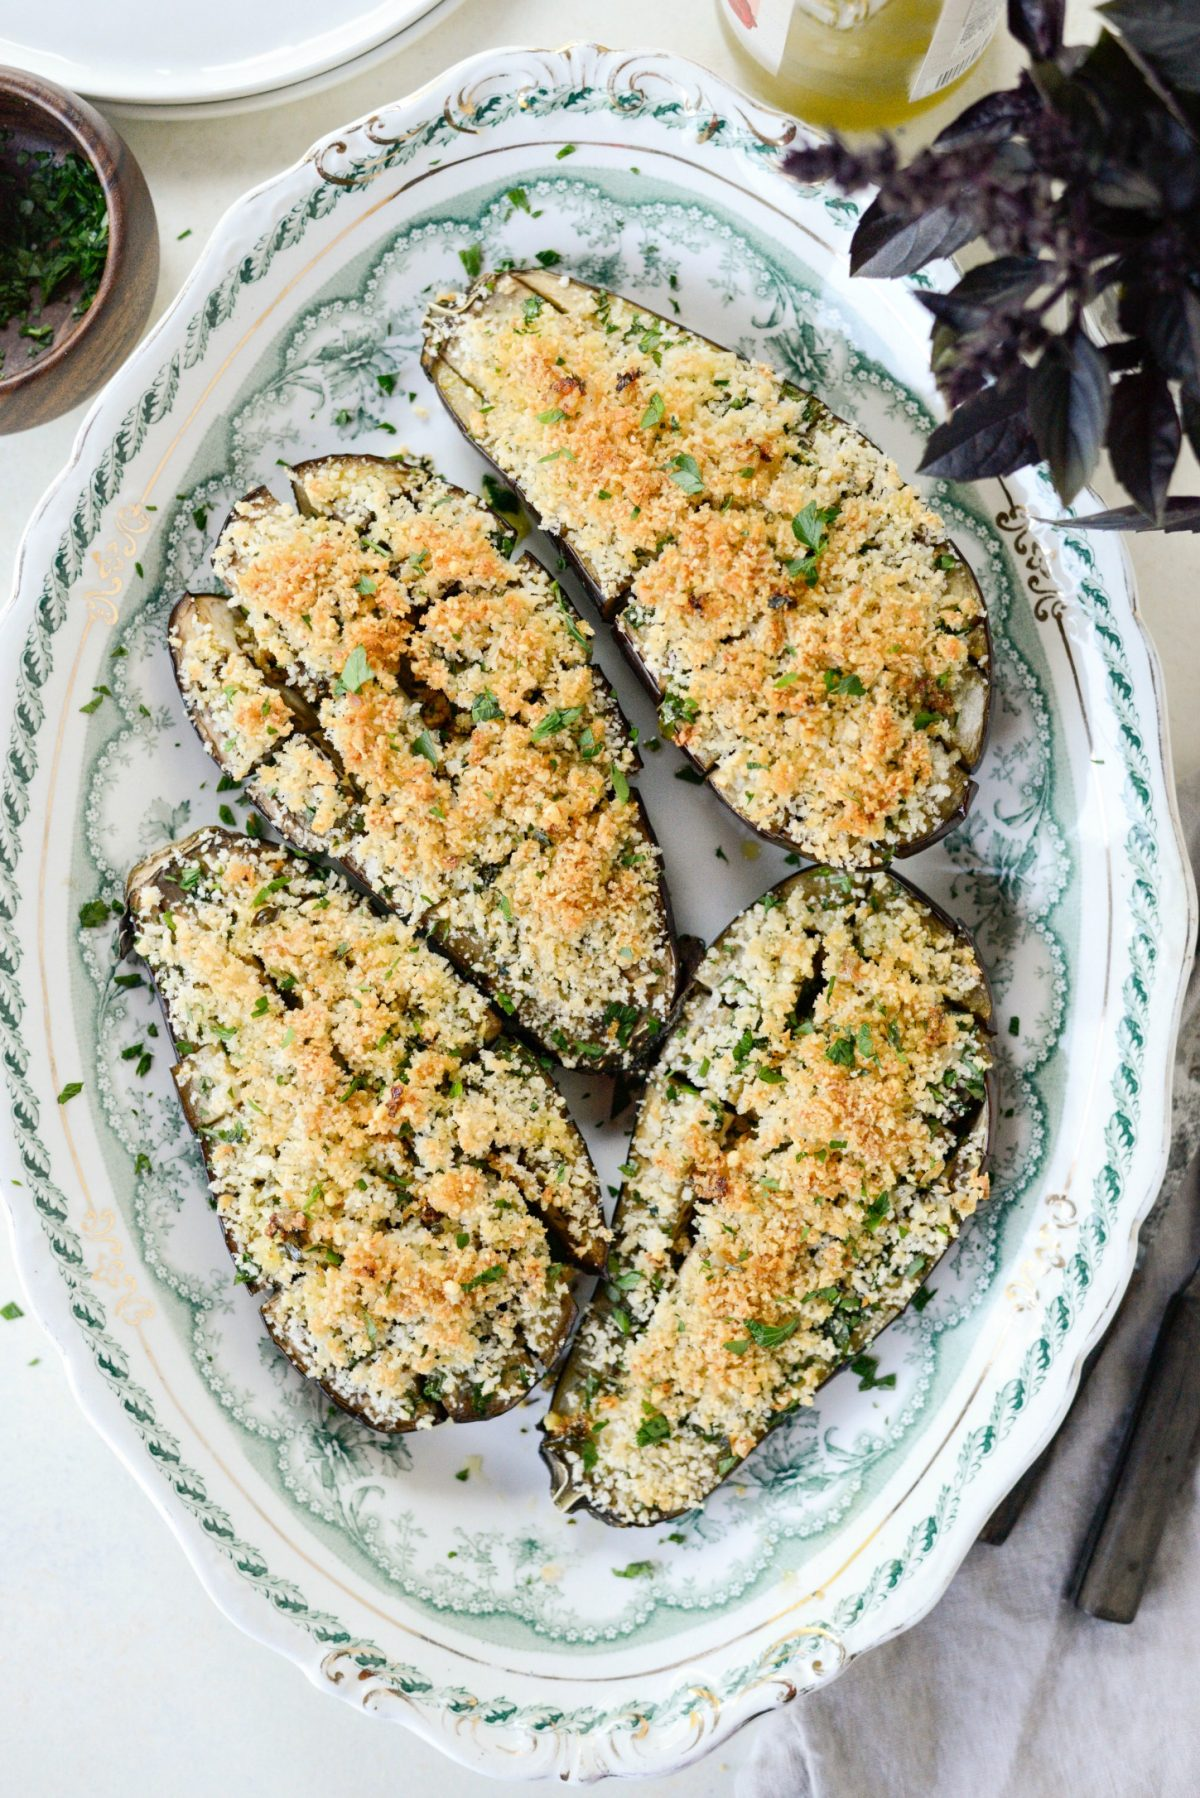 Baked Eggplant with Pecorino Crumbs